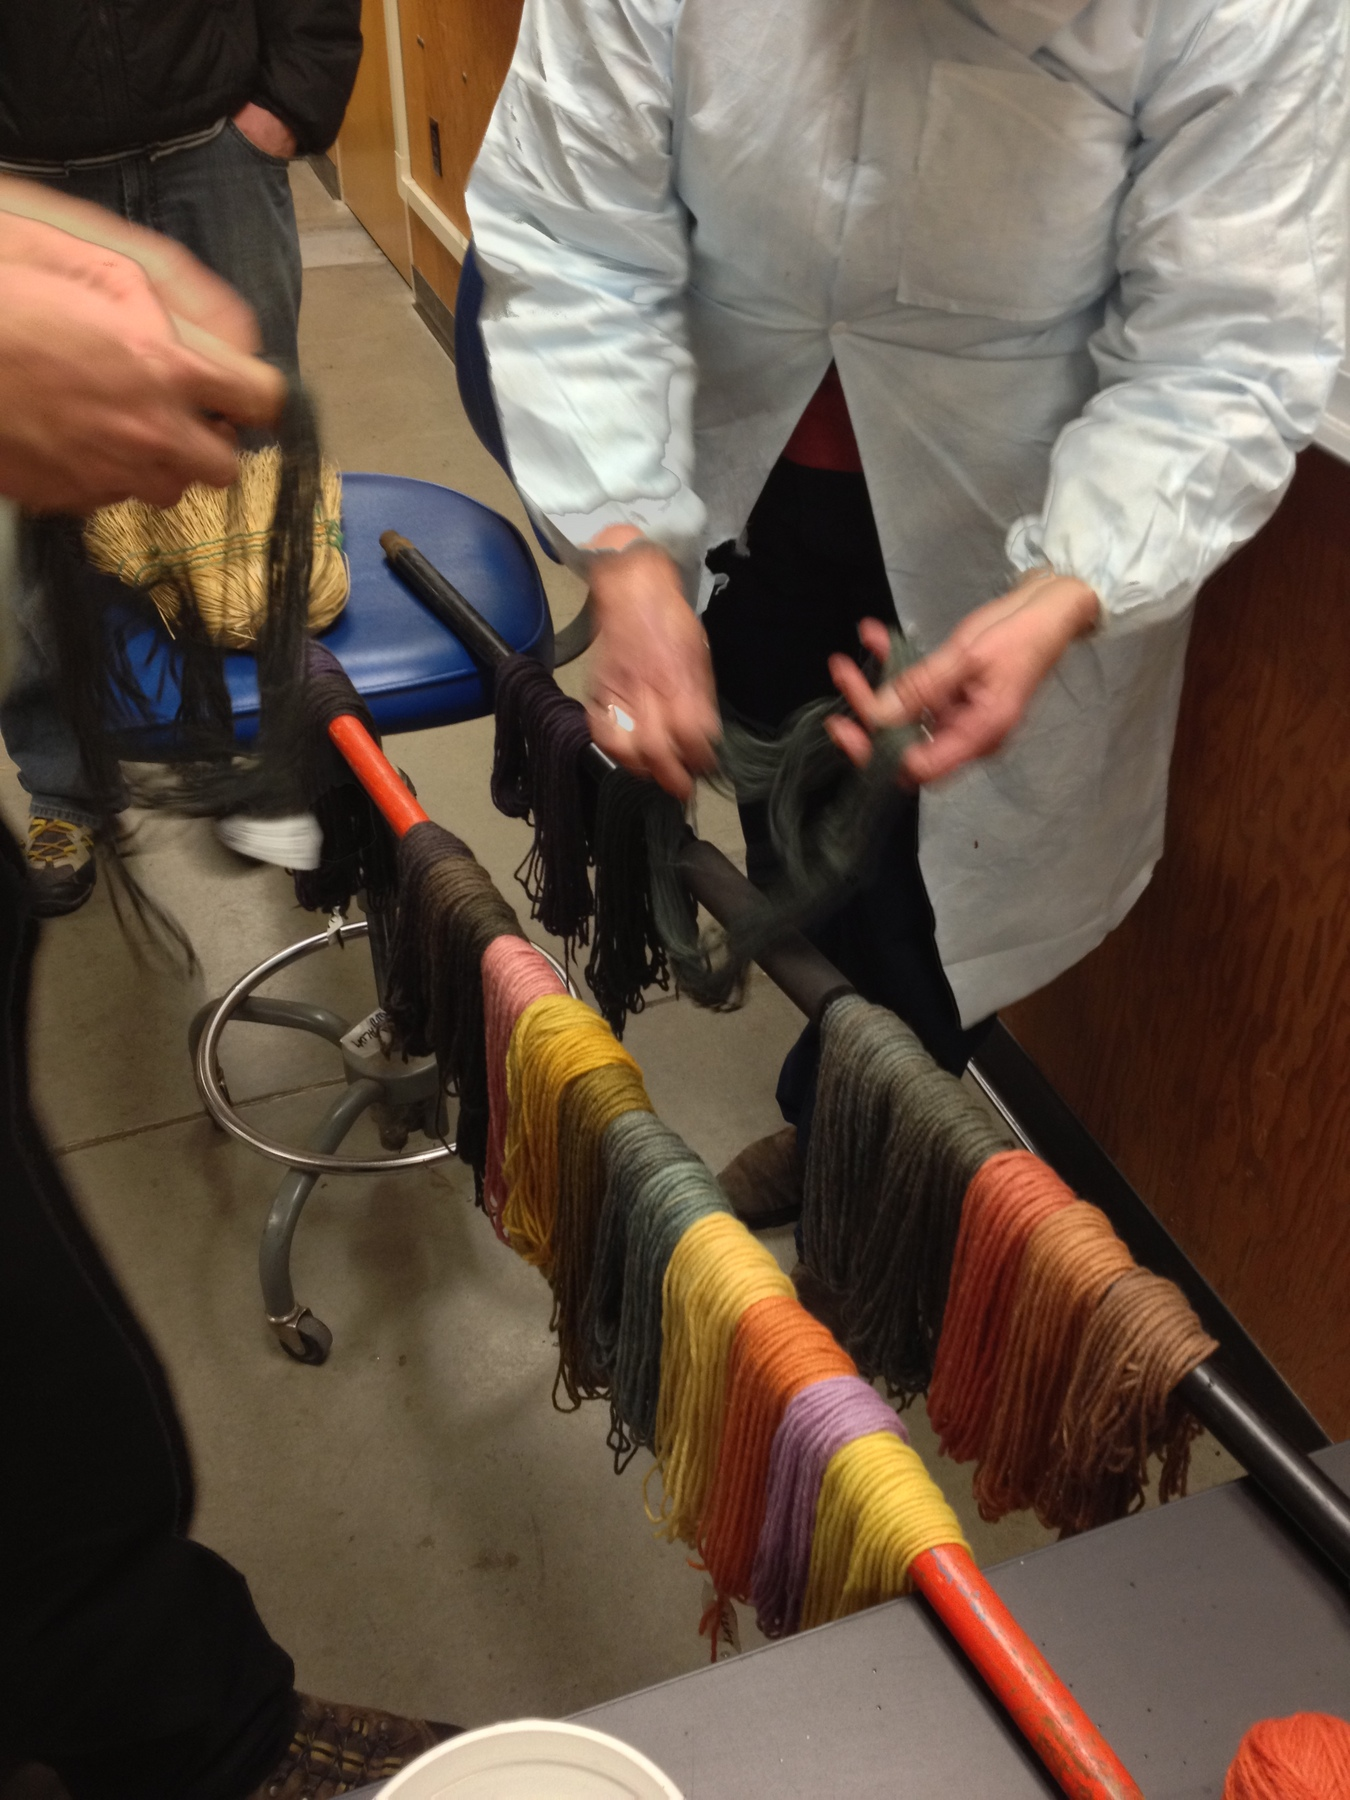 Back in to dry out our dyed wool. Then we assembled a little reference card of all our different colors. Vine video of the progress here: https://vine.co/v/bIP9BtdEMb7